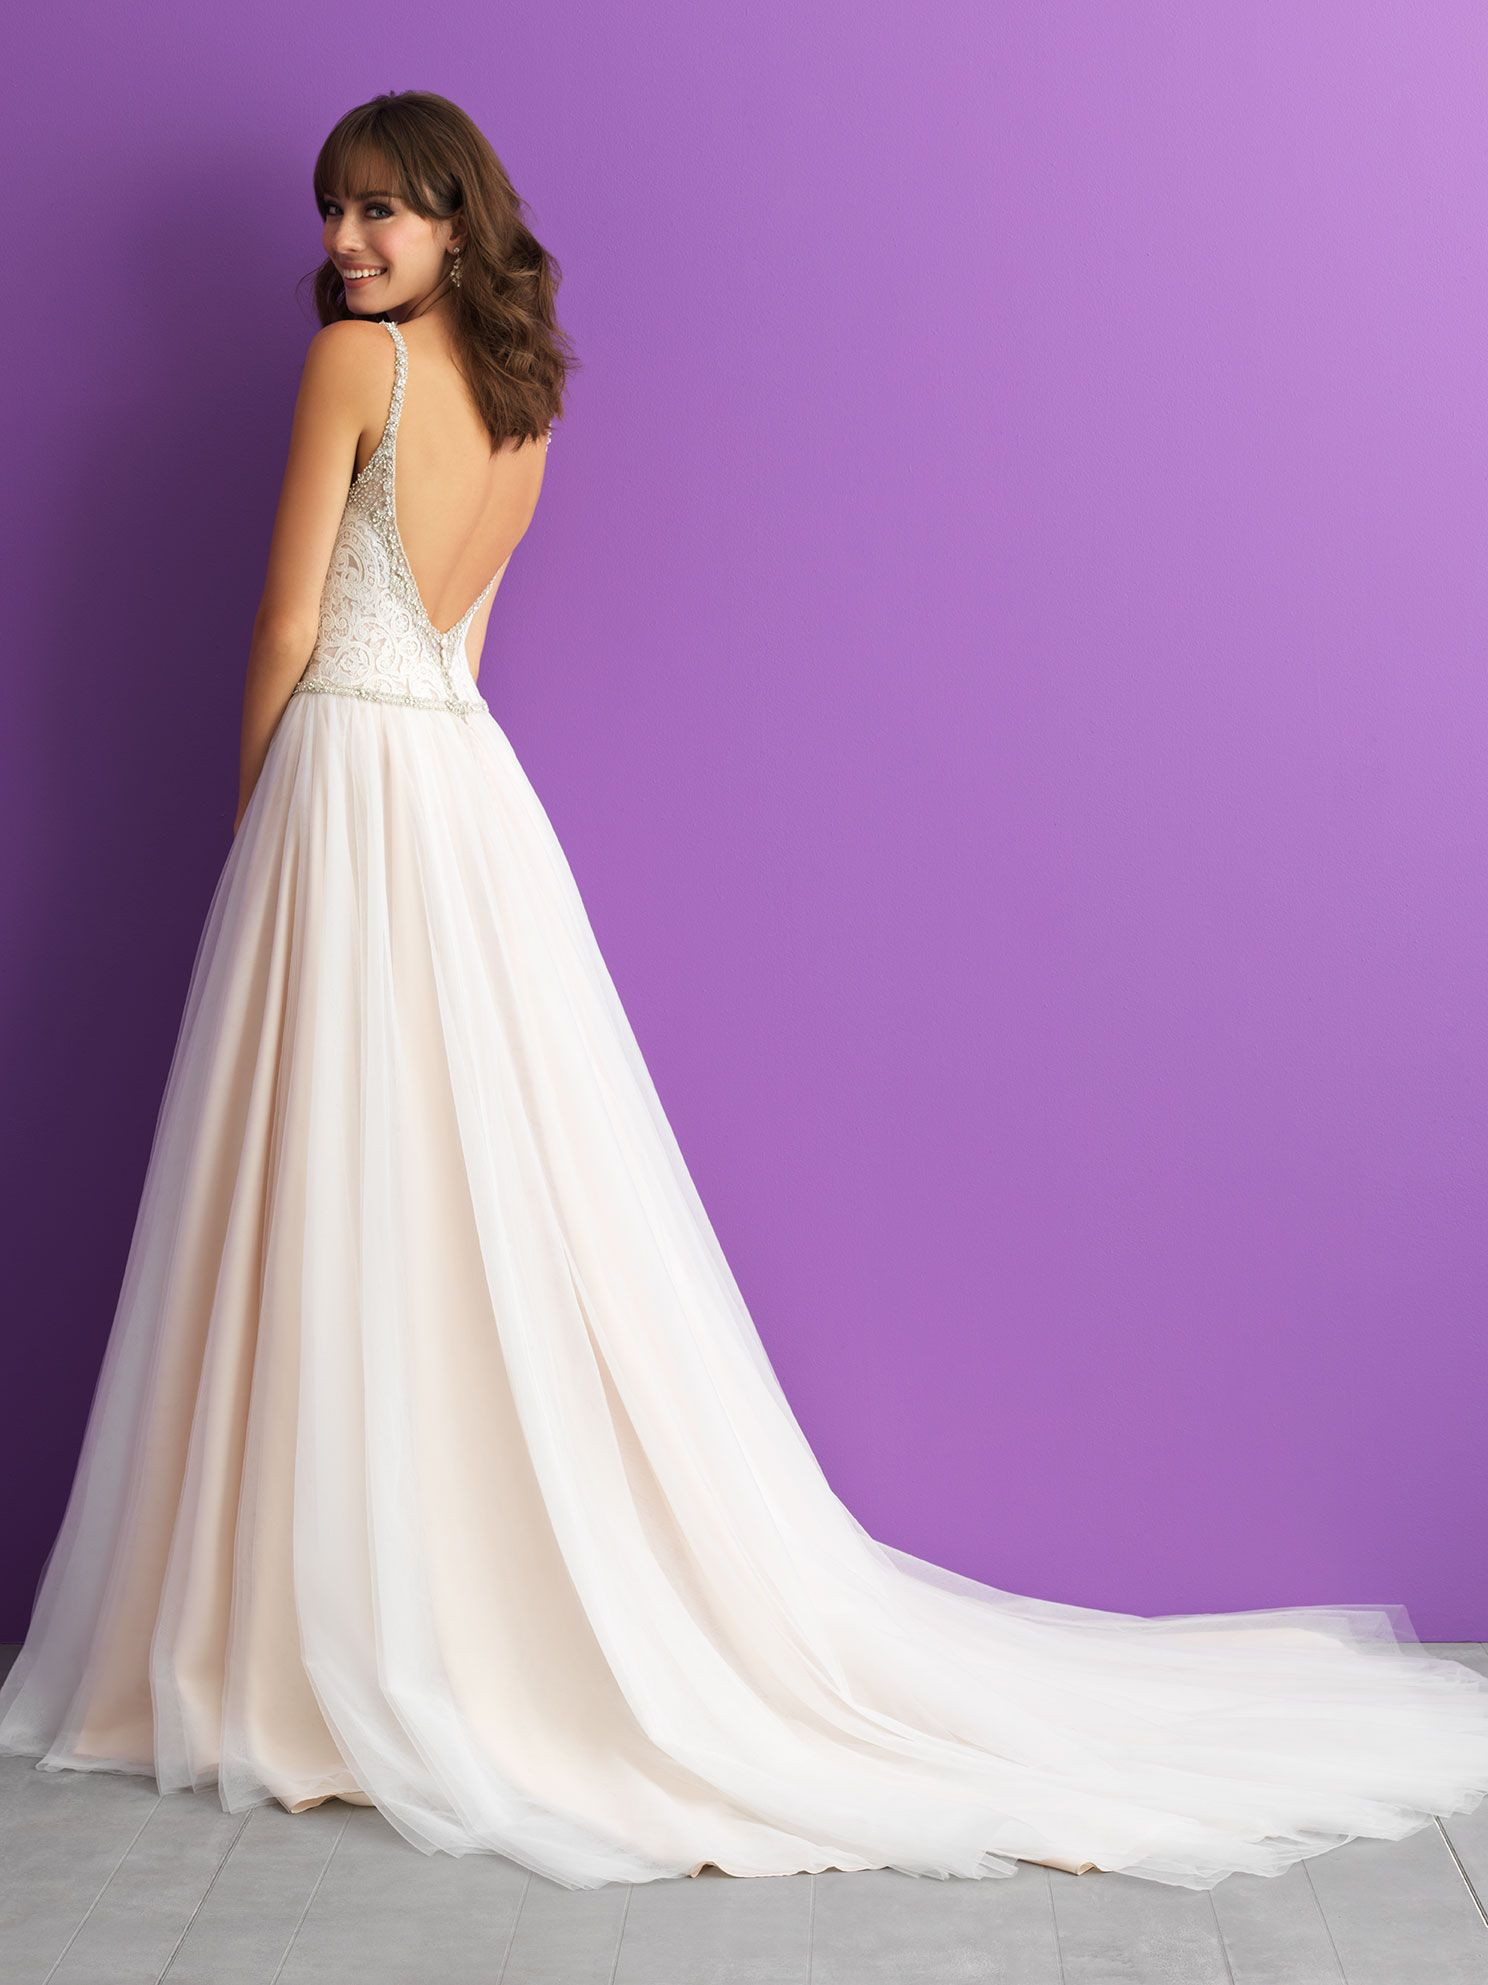 Allure romance bridal gowns available at nikkis glitz and glam allure romance bridal gowns available at nikkis glitz and glam boutique ombrellifo Image collections